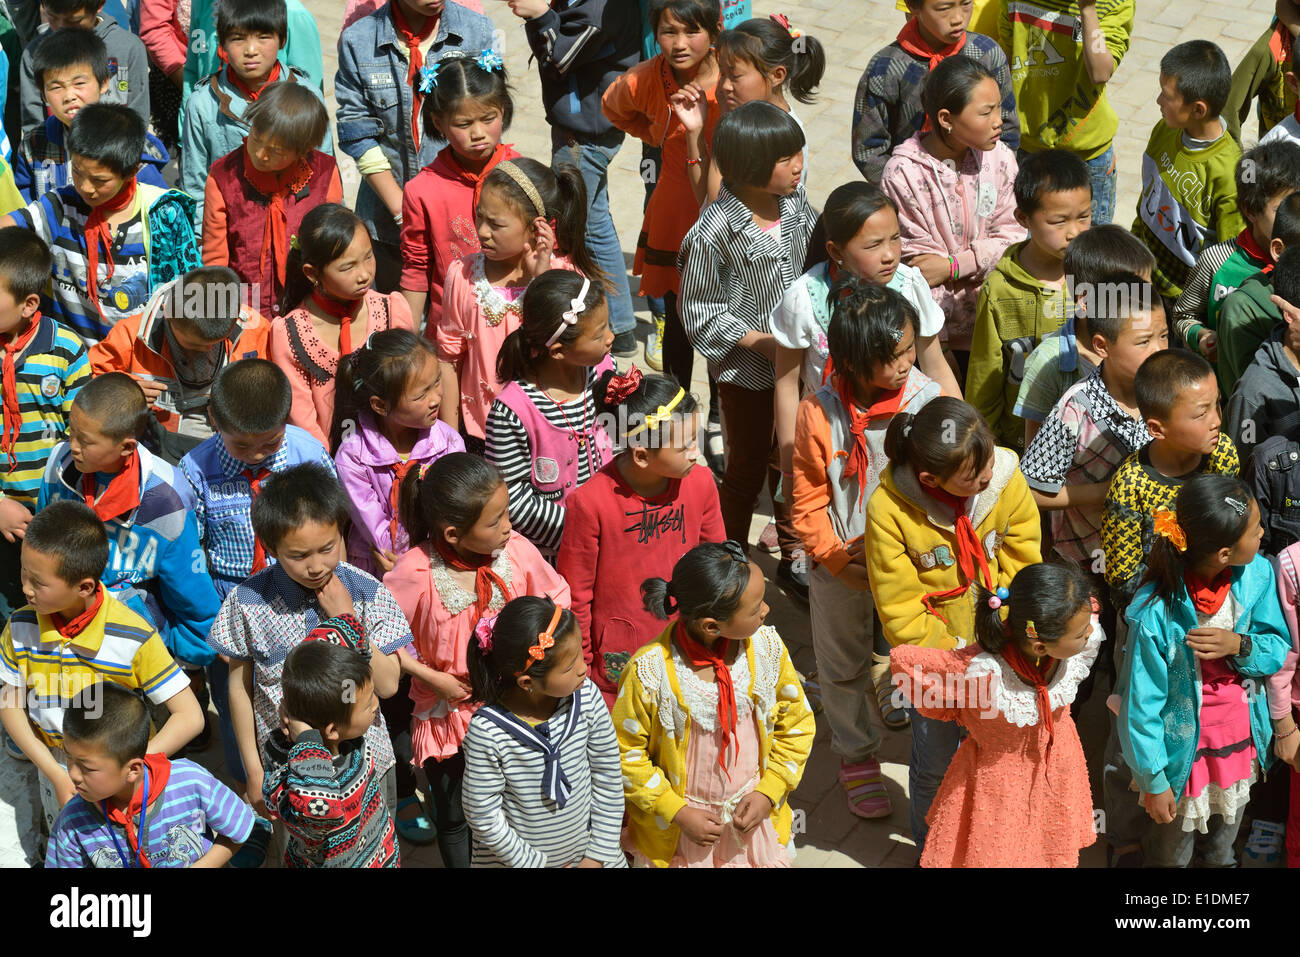 Primary school students rehearse before Children's Day in Tongxin, Ningxia Hui Autonomous Region, China. 05-28-2014 - Stock Image